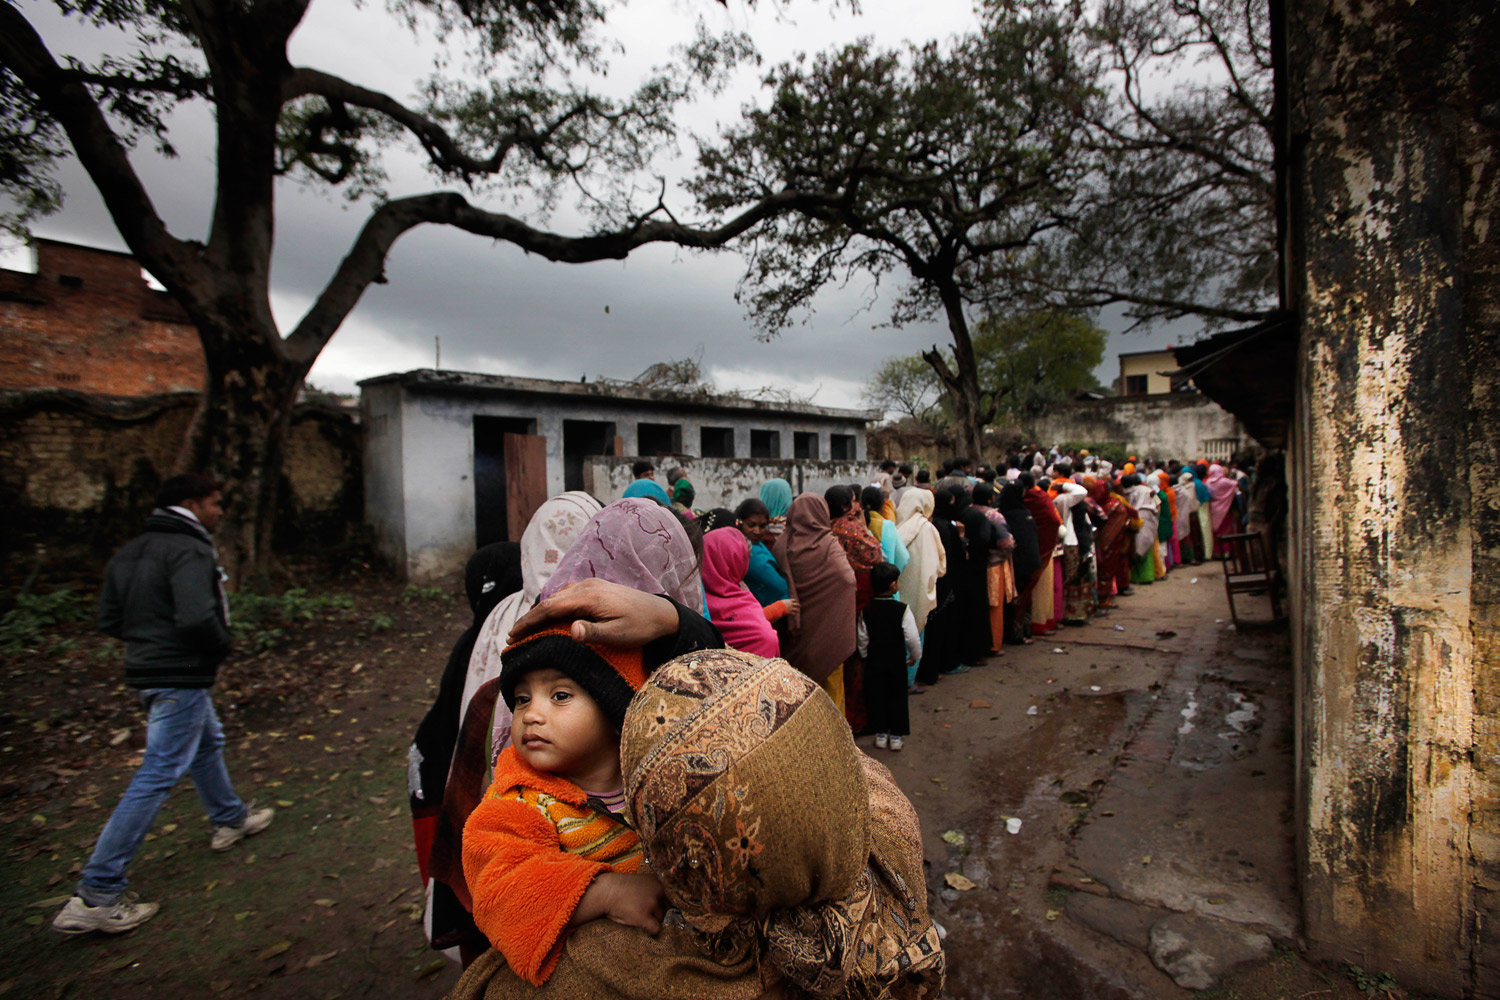 February 8, 2012. An Indian woman adjusts the cap of her child as she waits in a queue to cast her vote, in Ayodhya, India.